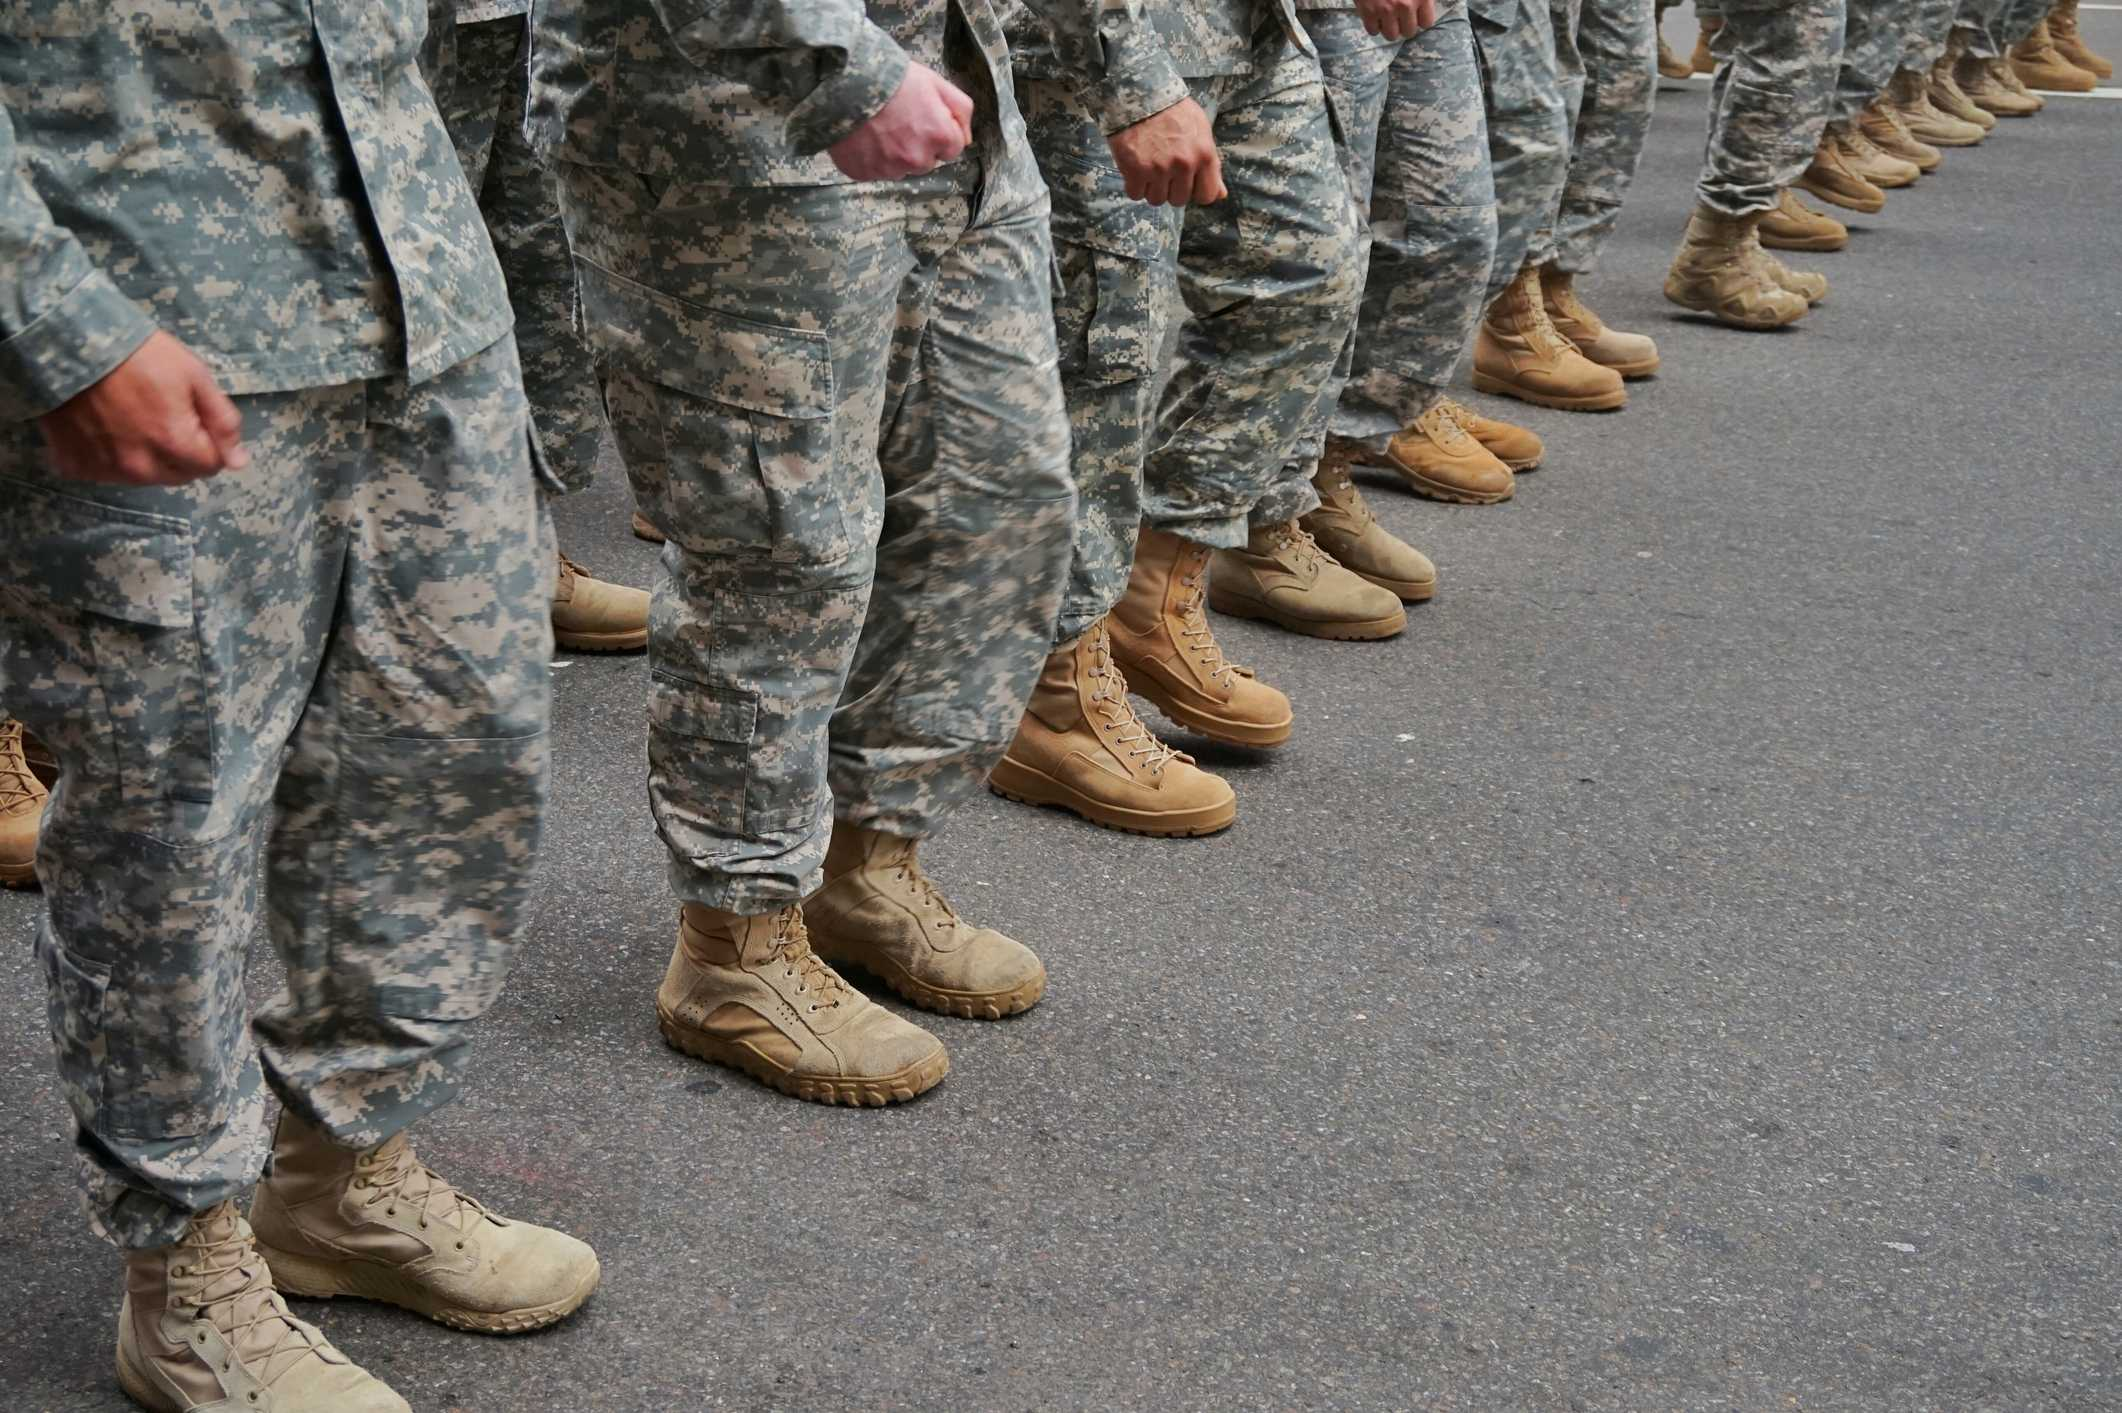 Report: US could send up to 10,000 troops to Middle East thumbnail